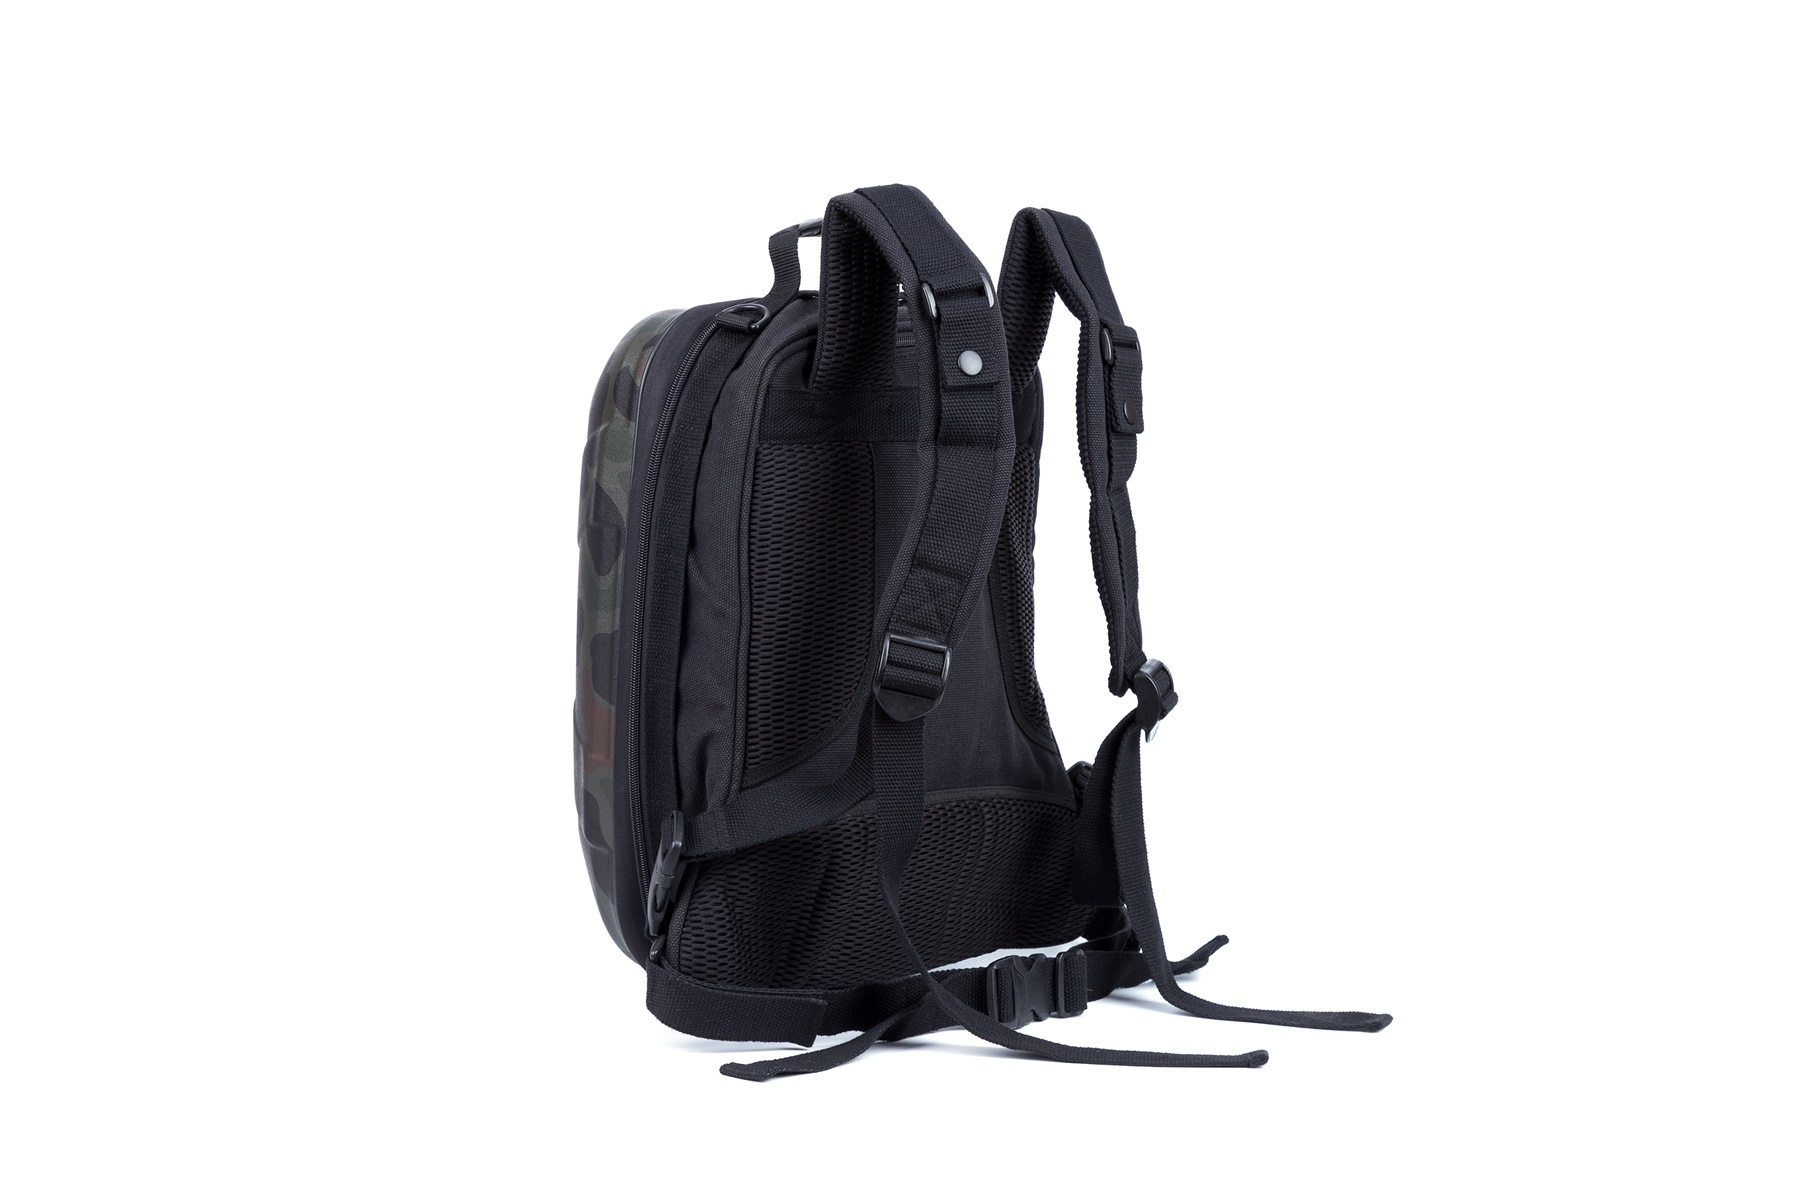 GF bags-Manufacturer Of Military Style Backpack And Bag Tactical - GF Bags-5